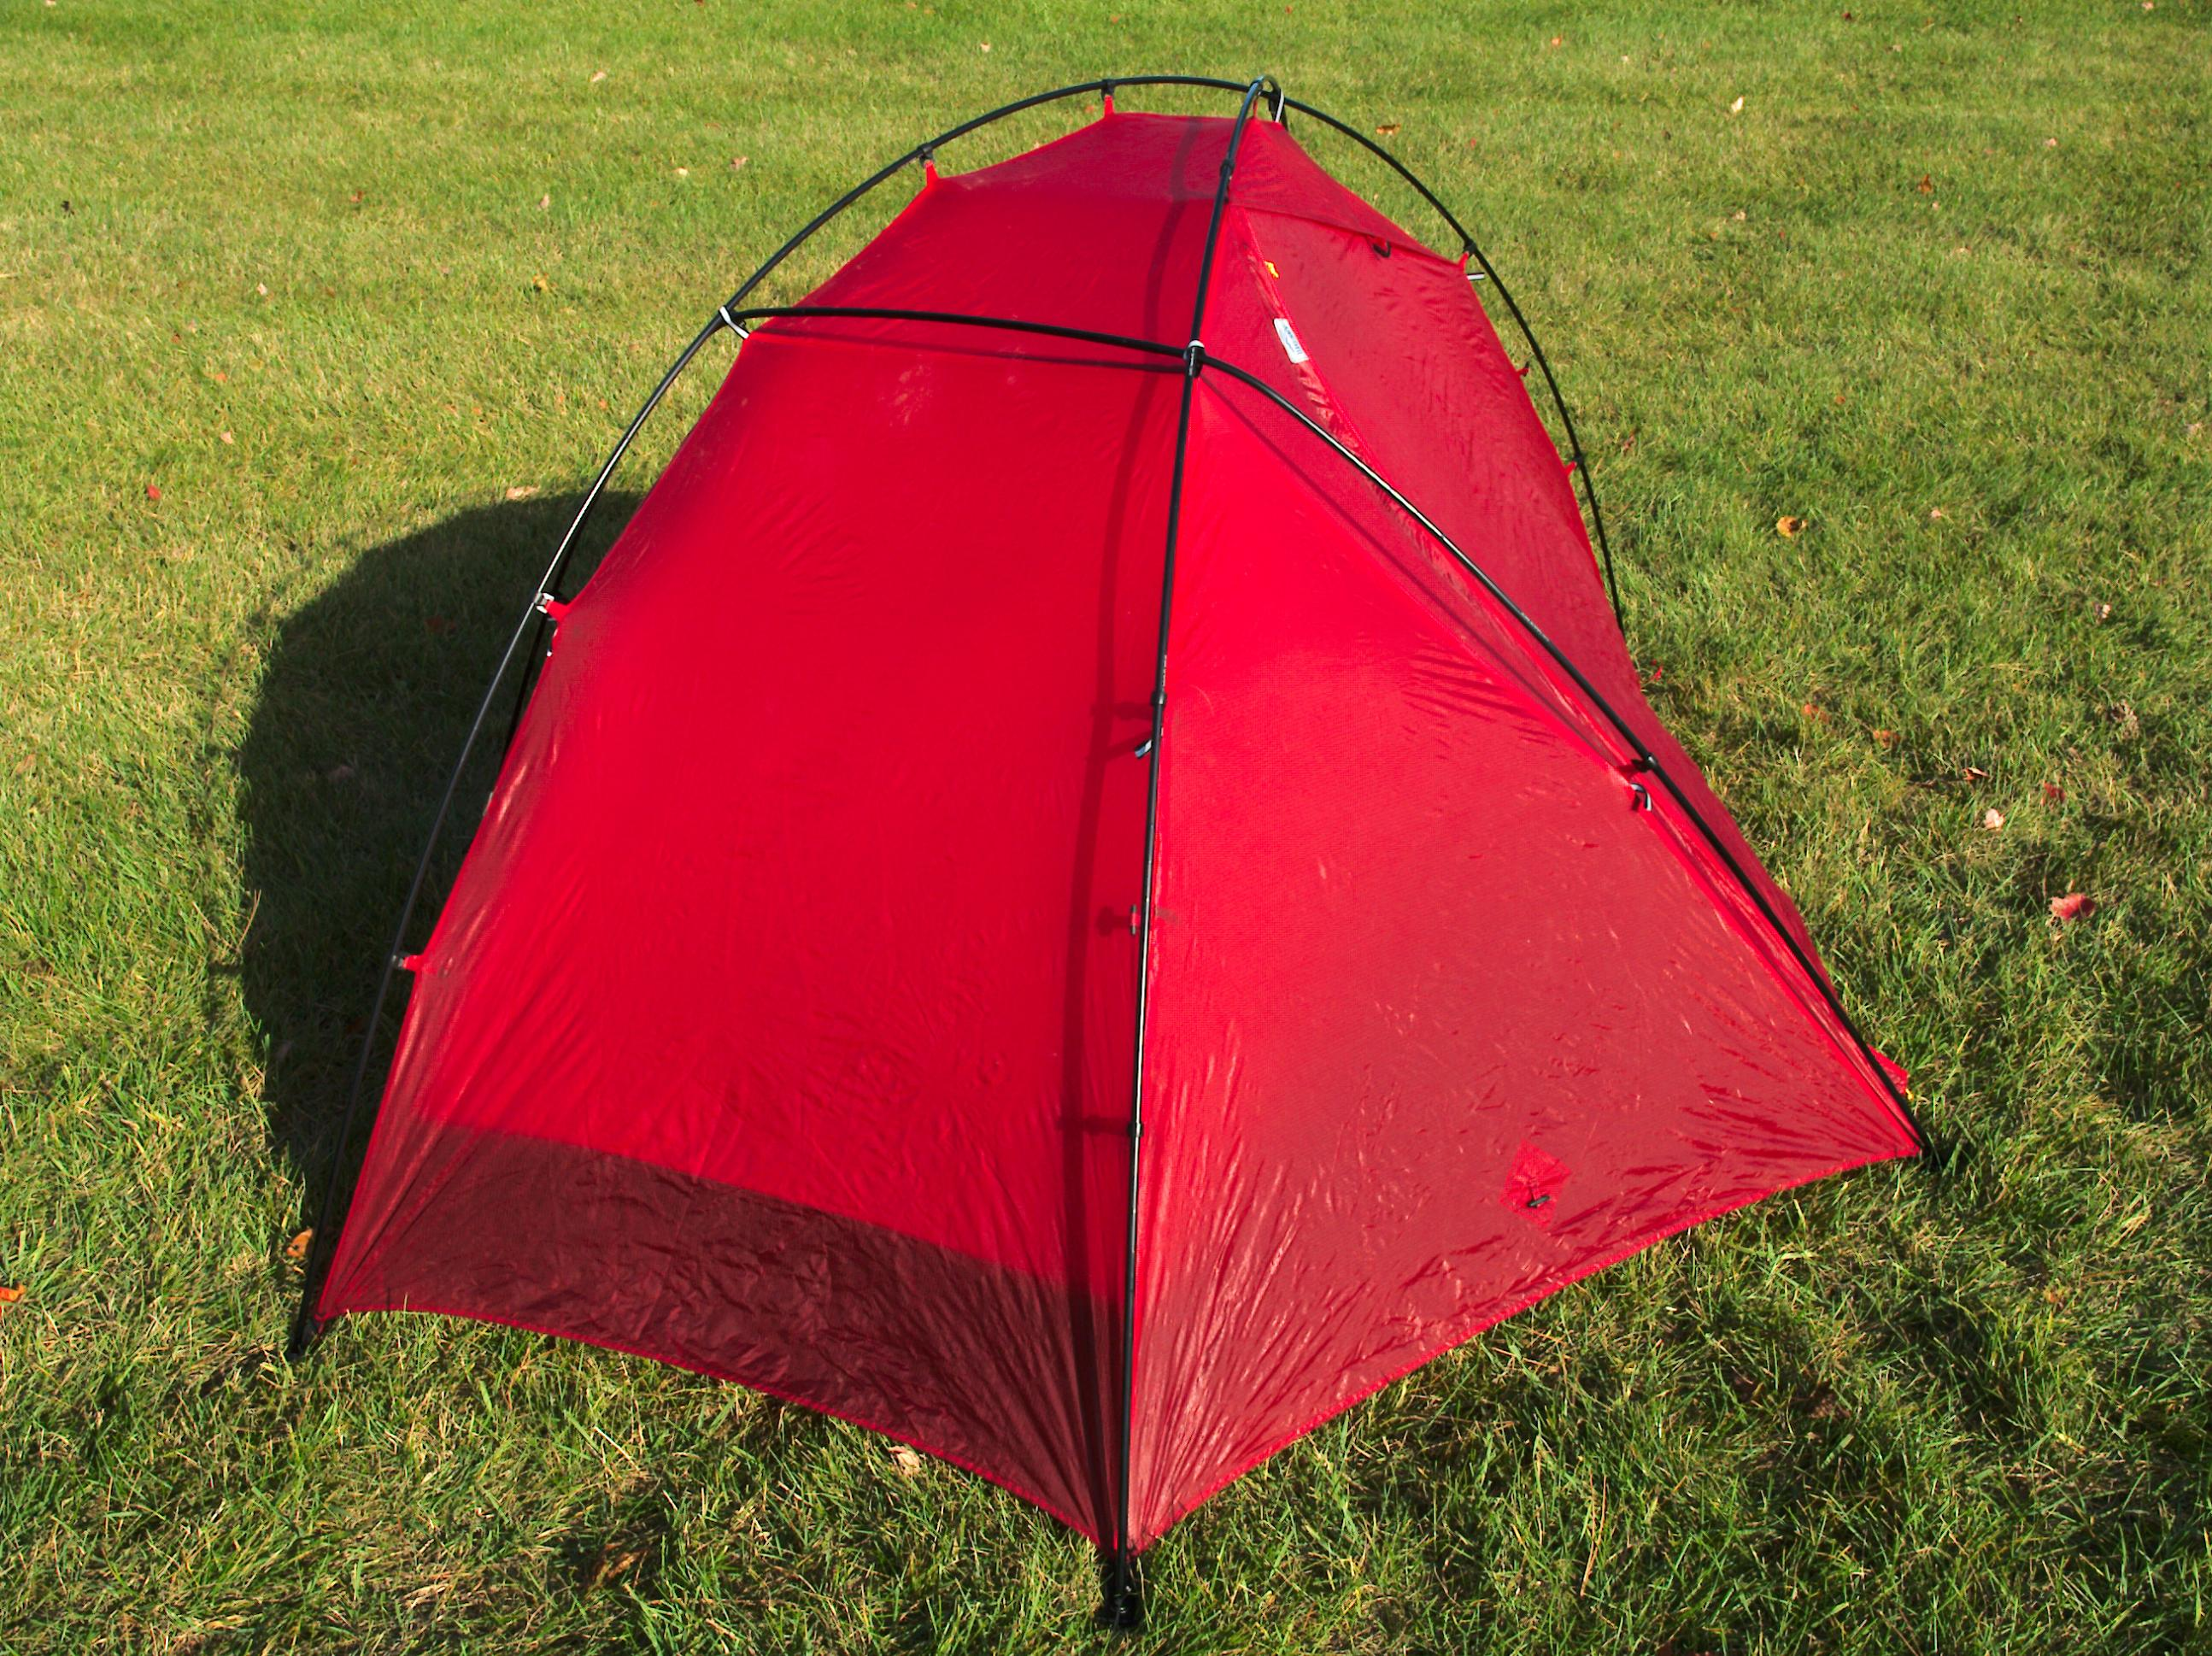 ... 4 season double wall free standing 3 pound (my scale no stakes or bags but otherwise fully assembled) 2 door/vestibule solo tent. & BWCA solo tent preview Boundary Waters Gear Forum